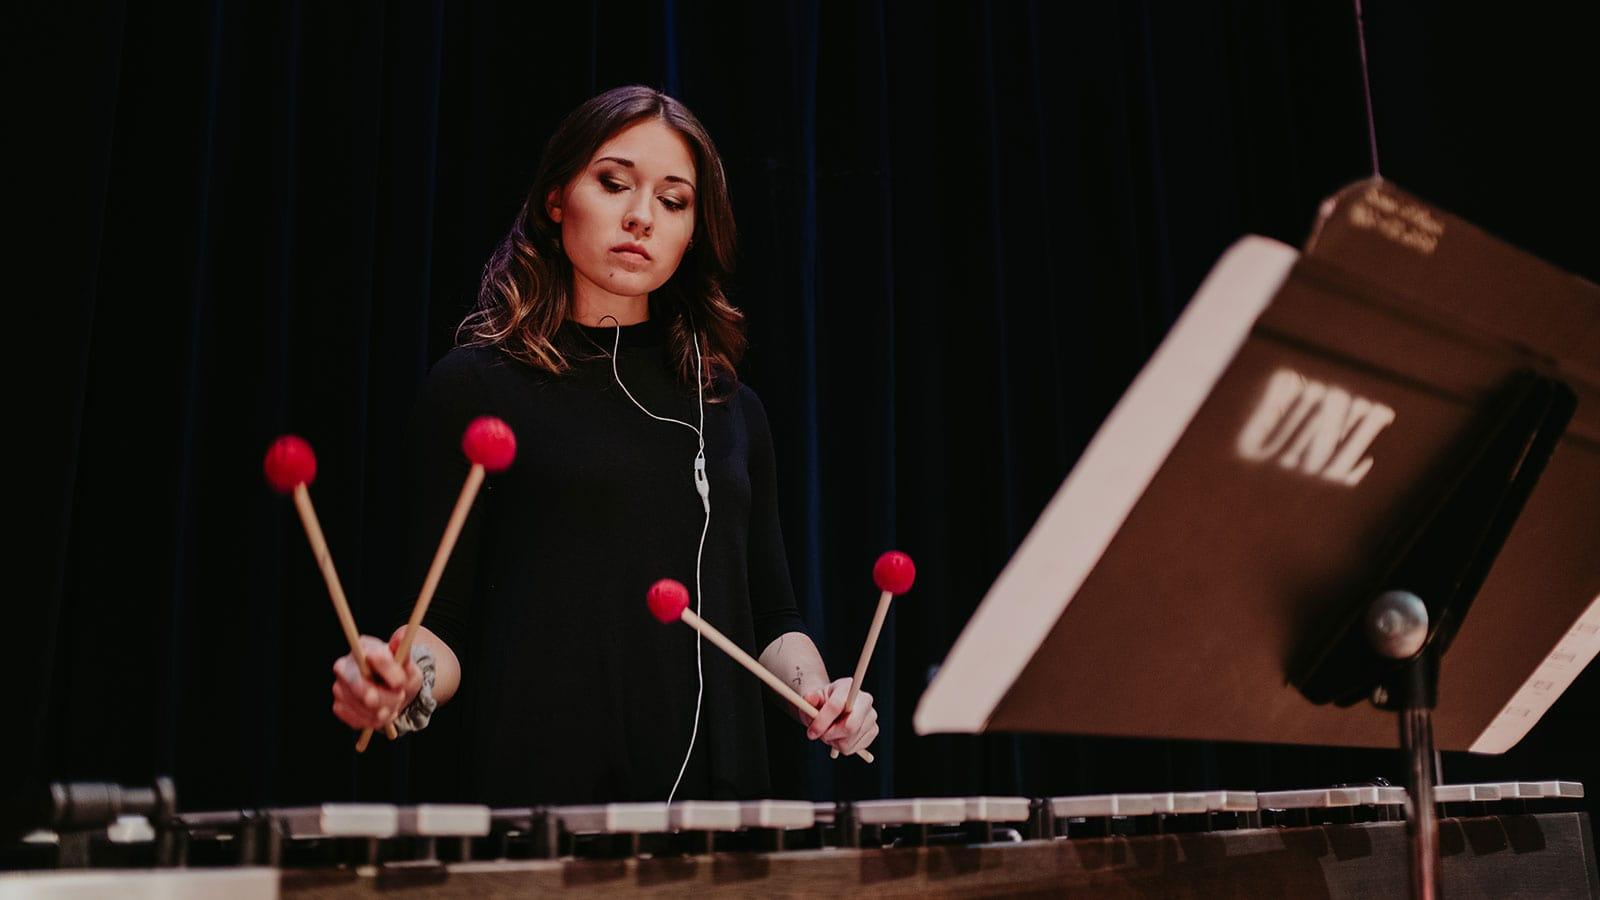 percussion music student performing